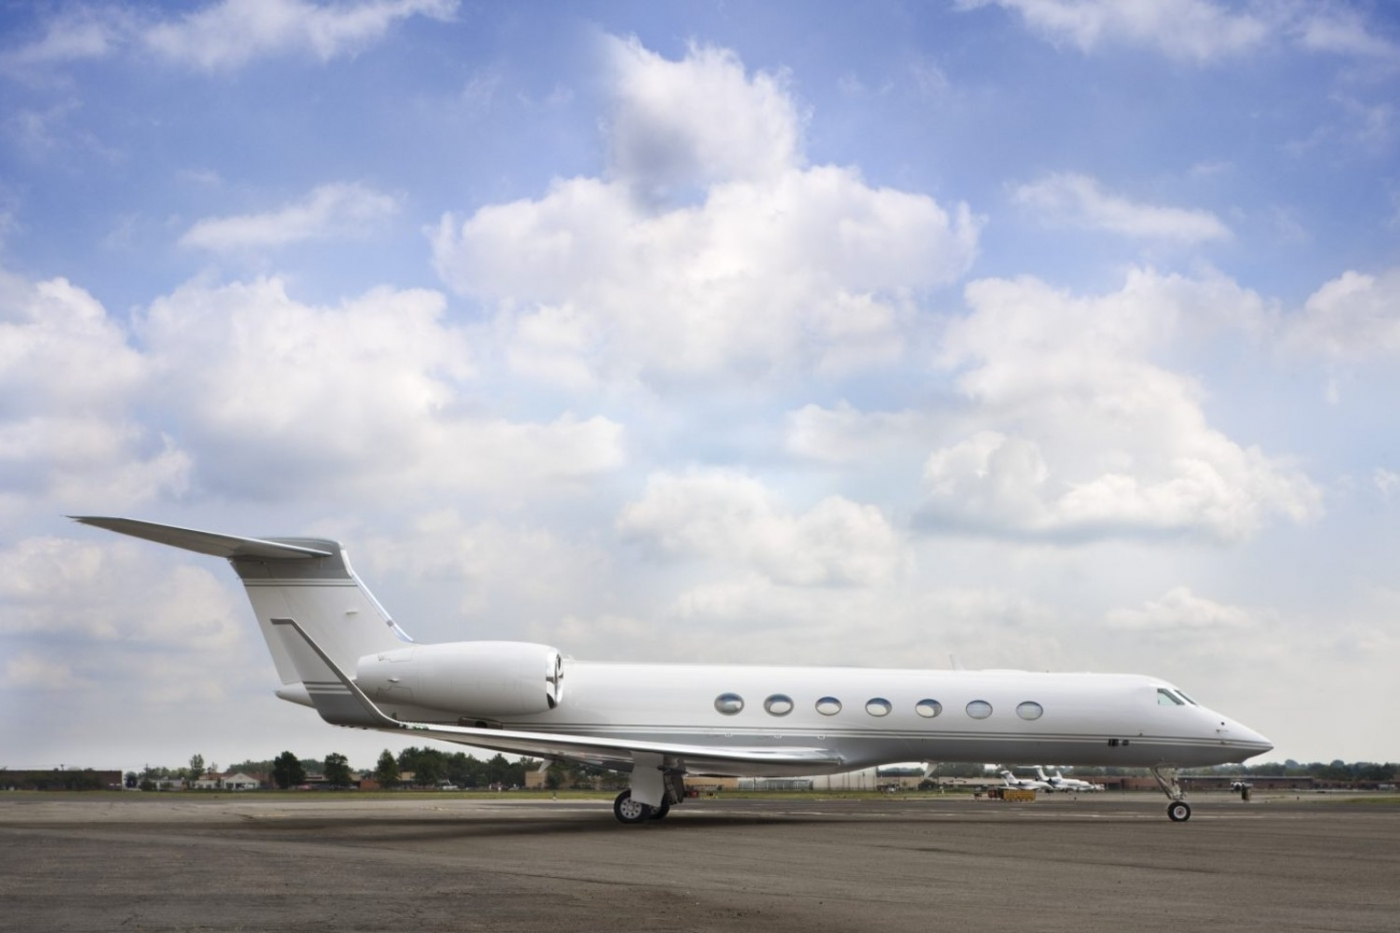 luxury private jets Luxury Private Jets by SheltonMindel℠ 1038 07A 4 1440x935 1 1400x933